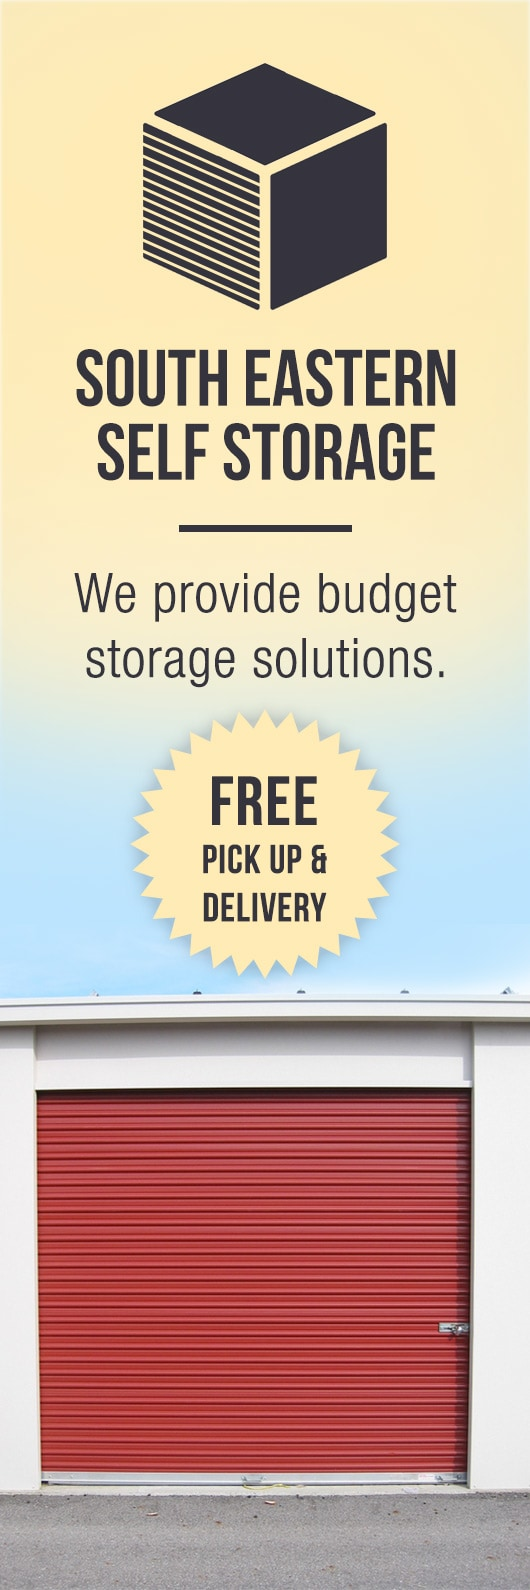 Pakenham Storage South Eastern Self Storage Storage Solutions 50 Mary St Pakenham